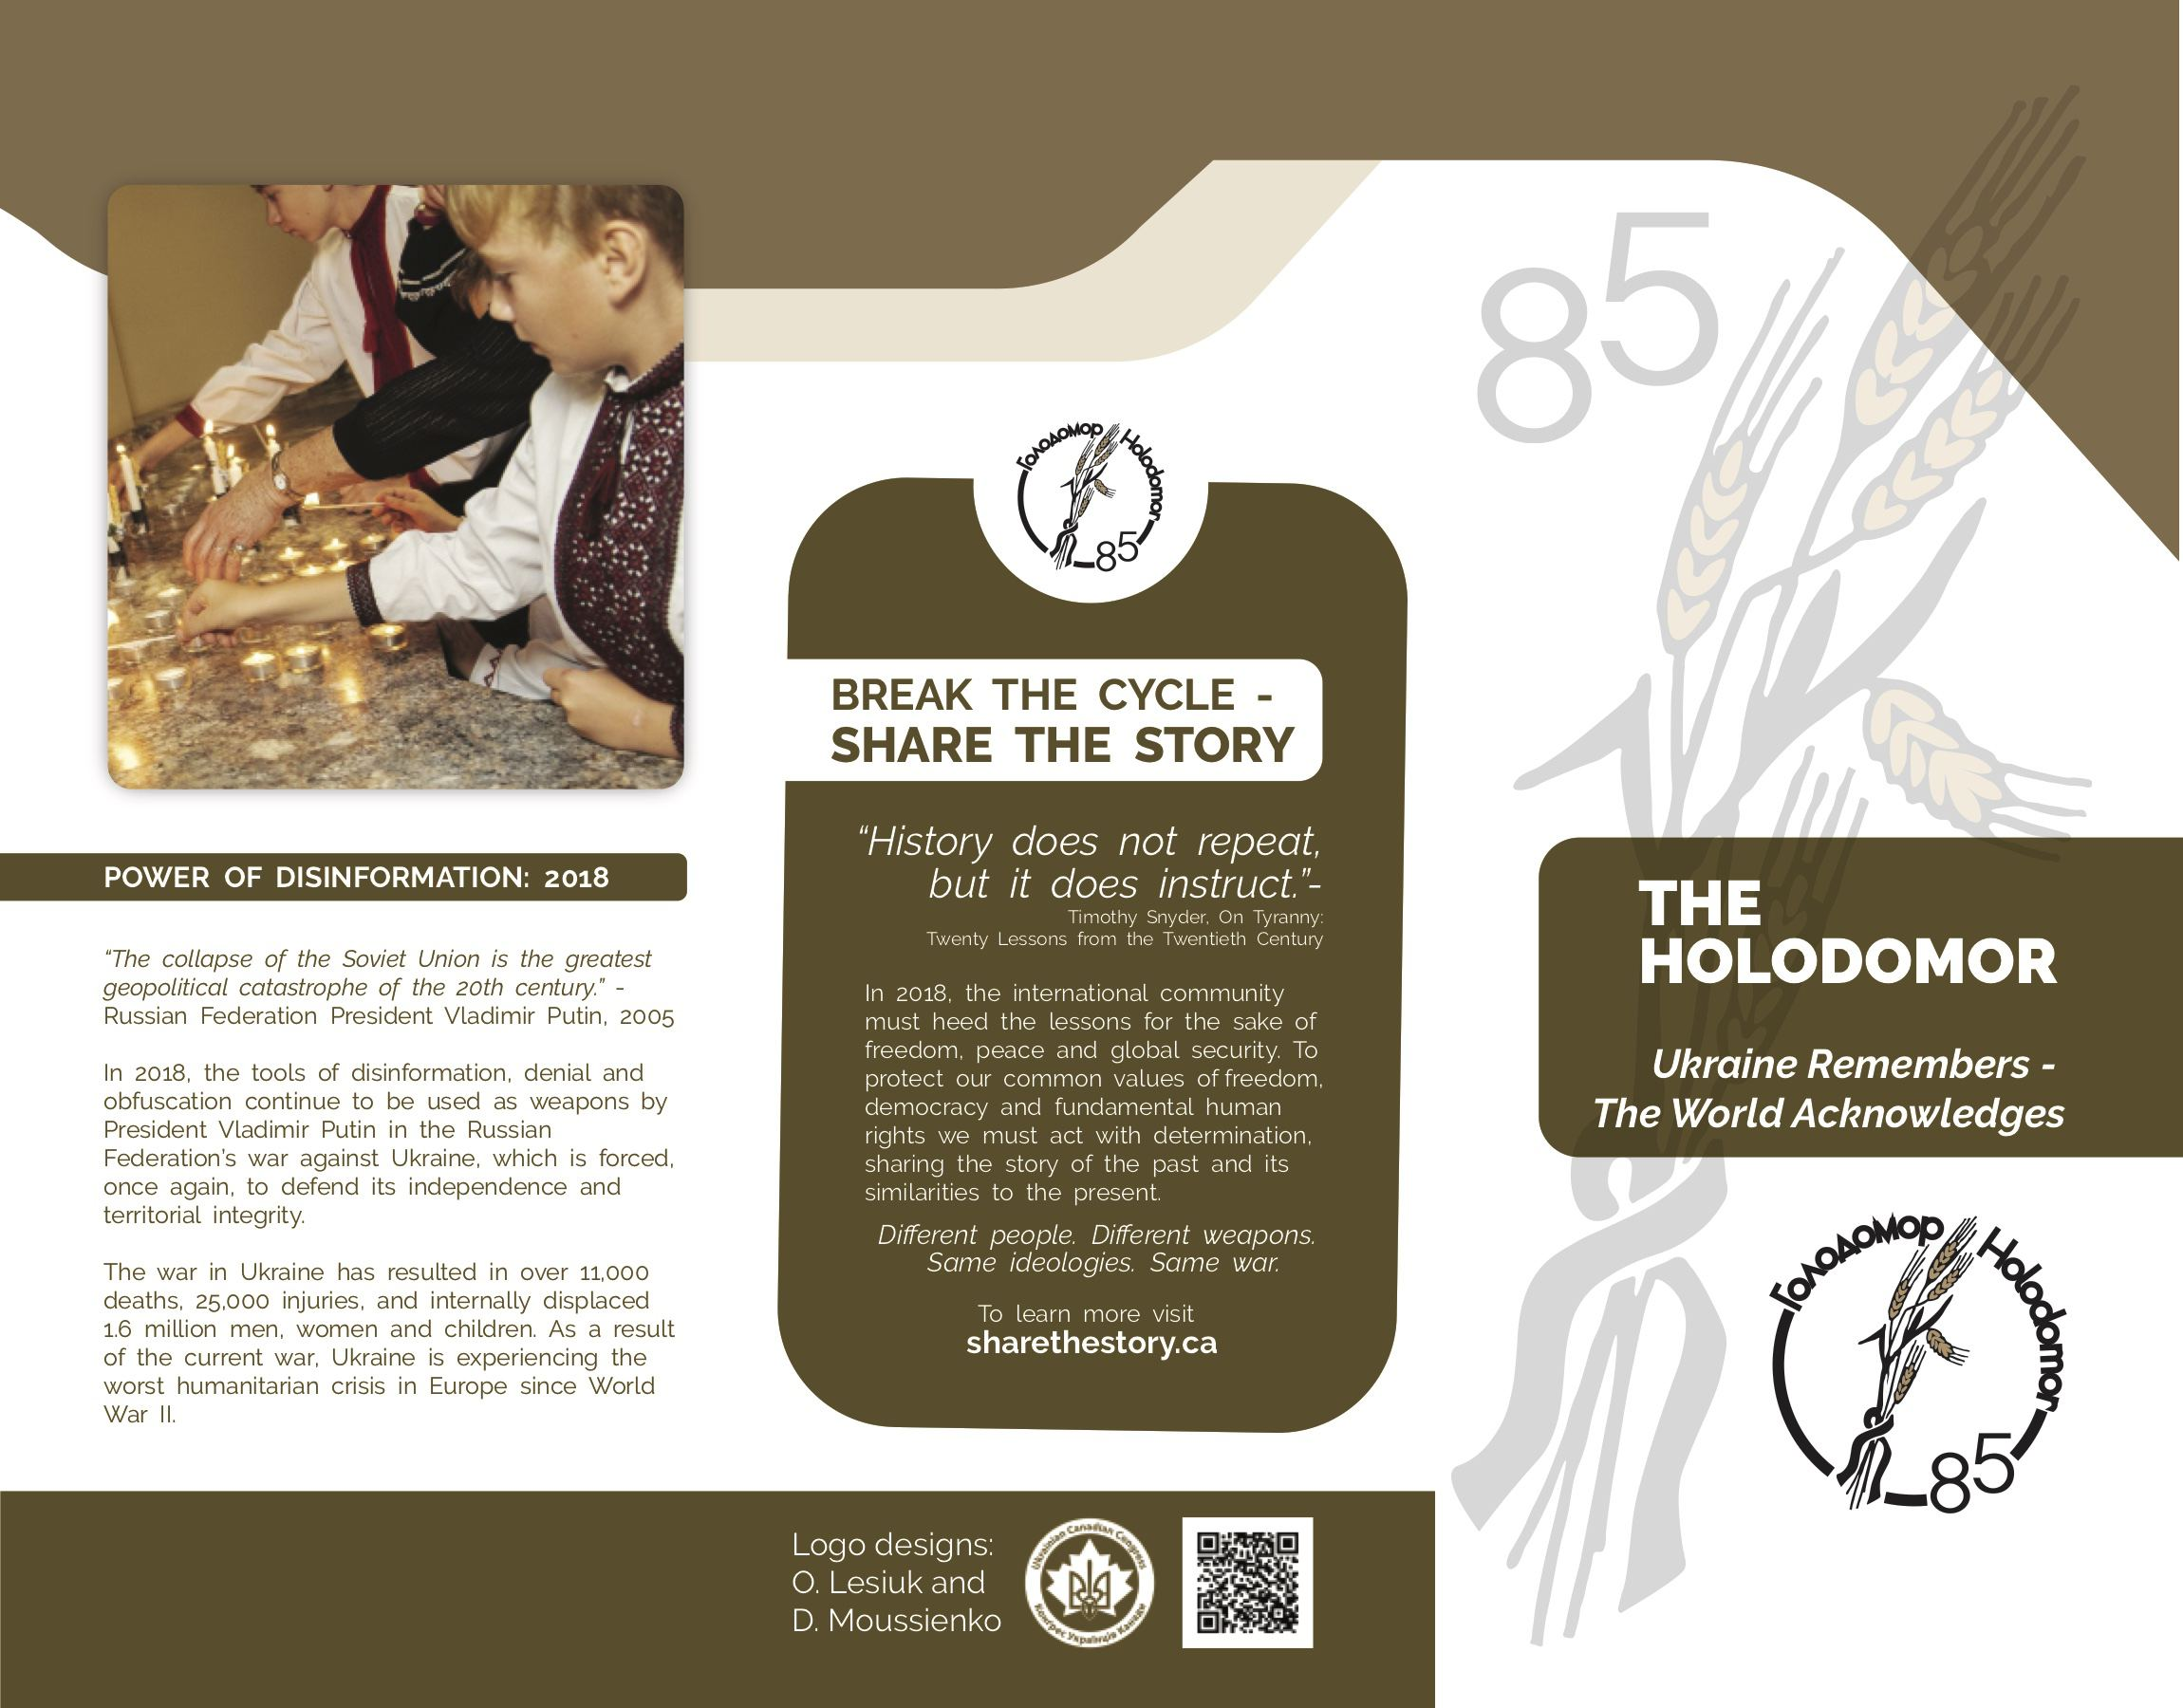 Holodomor Share the Story Project by Urban Block Media in Ottawa